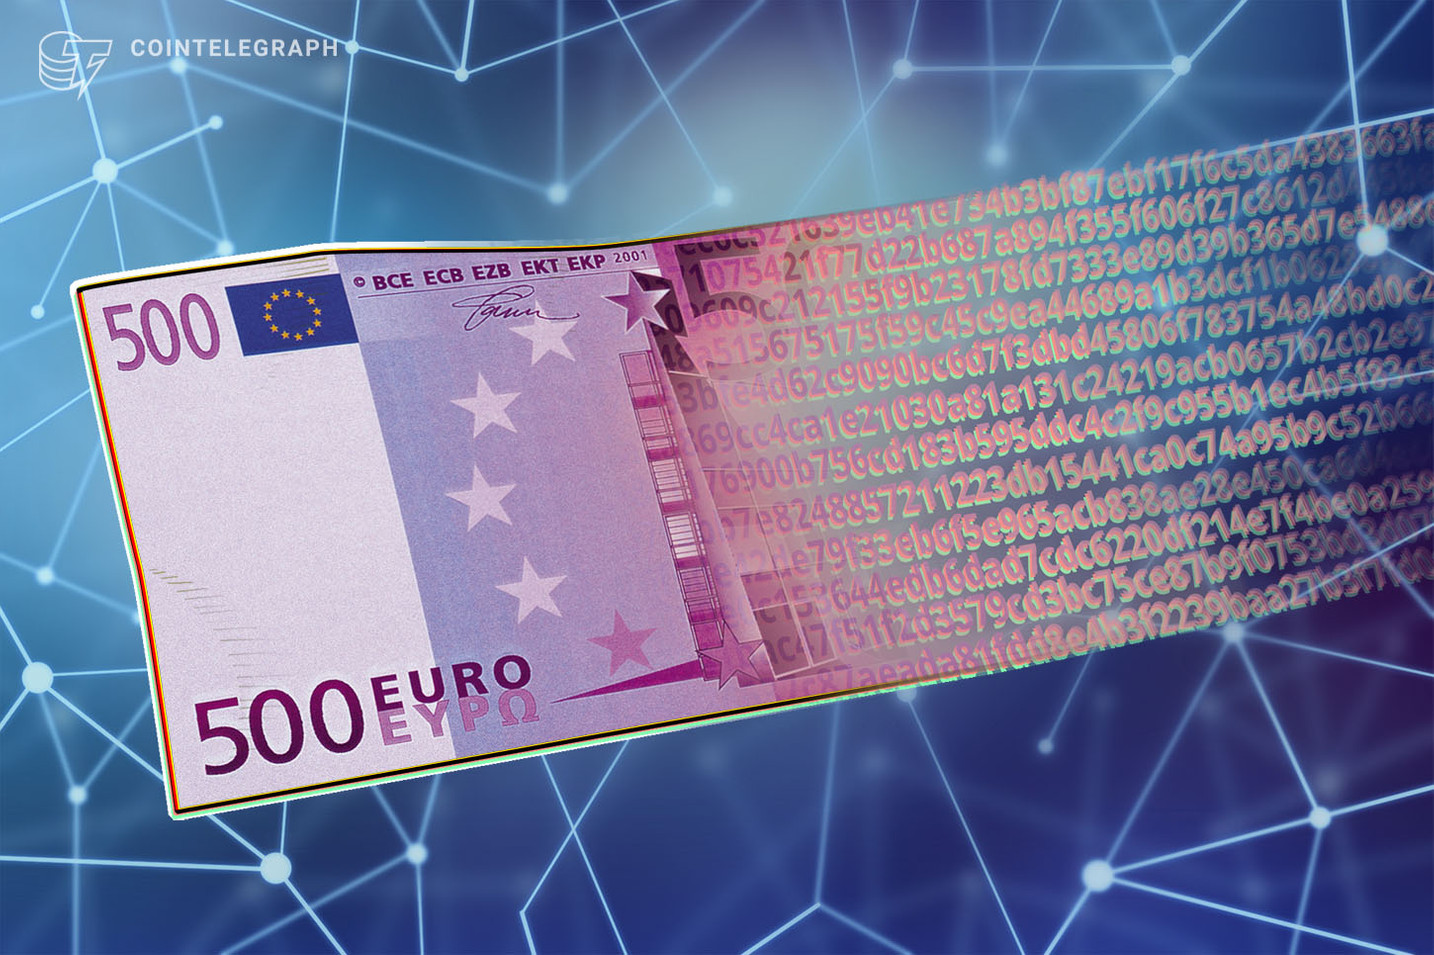 100M euro digital bond was a CBDC test, says Banque de France